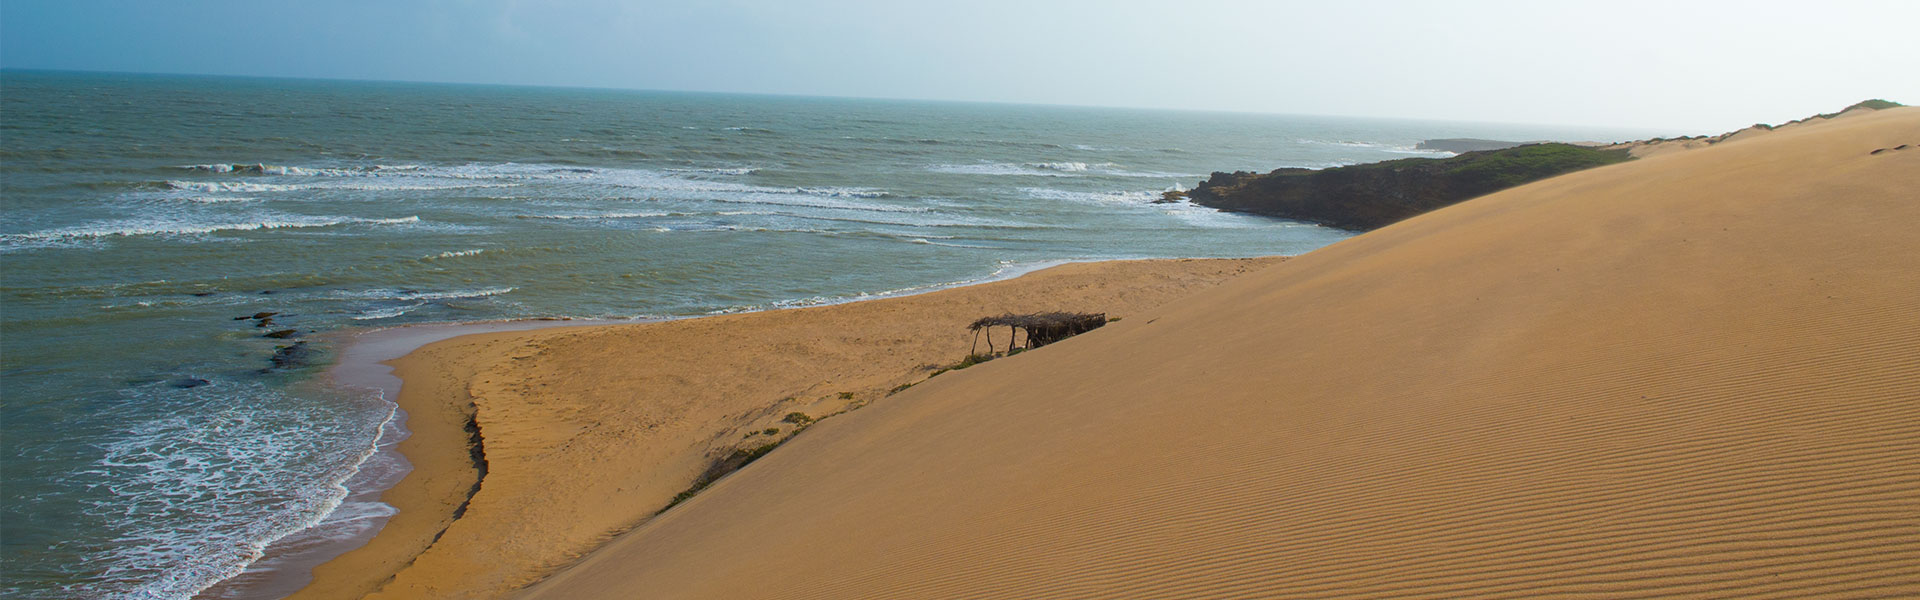 Punta Gallinas Beach Colombia Magic Tour